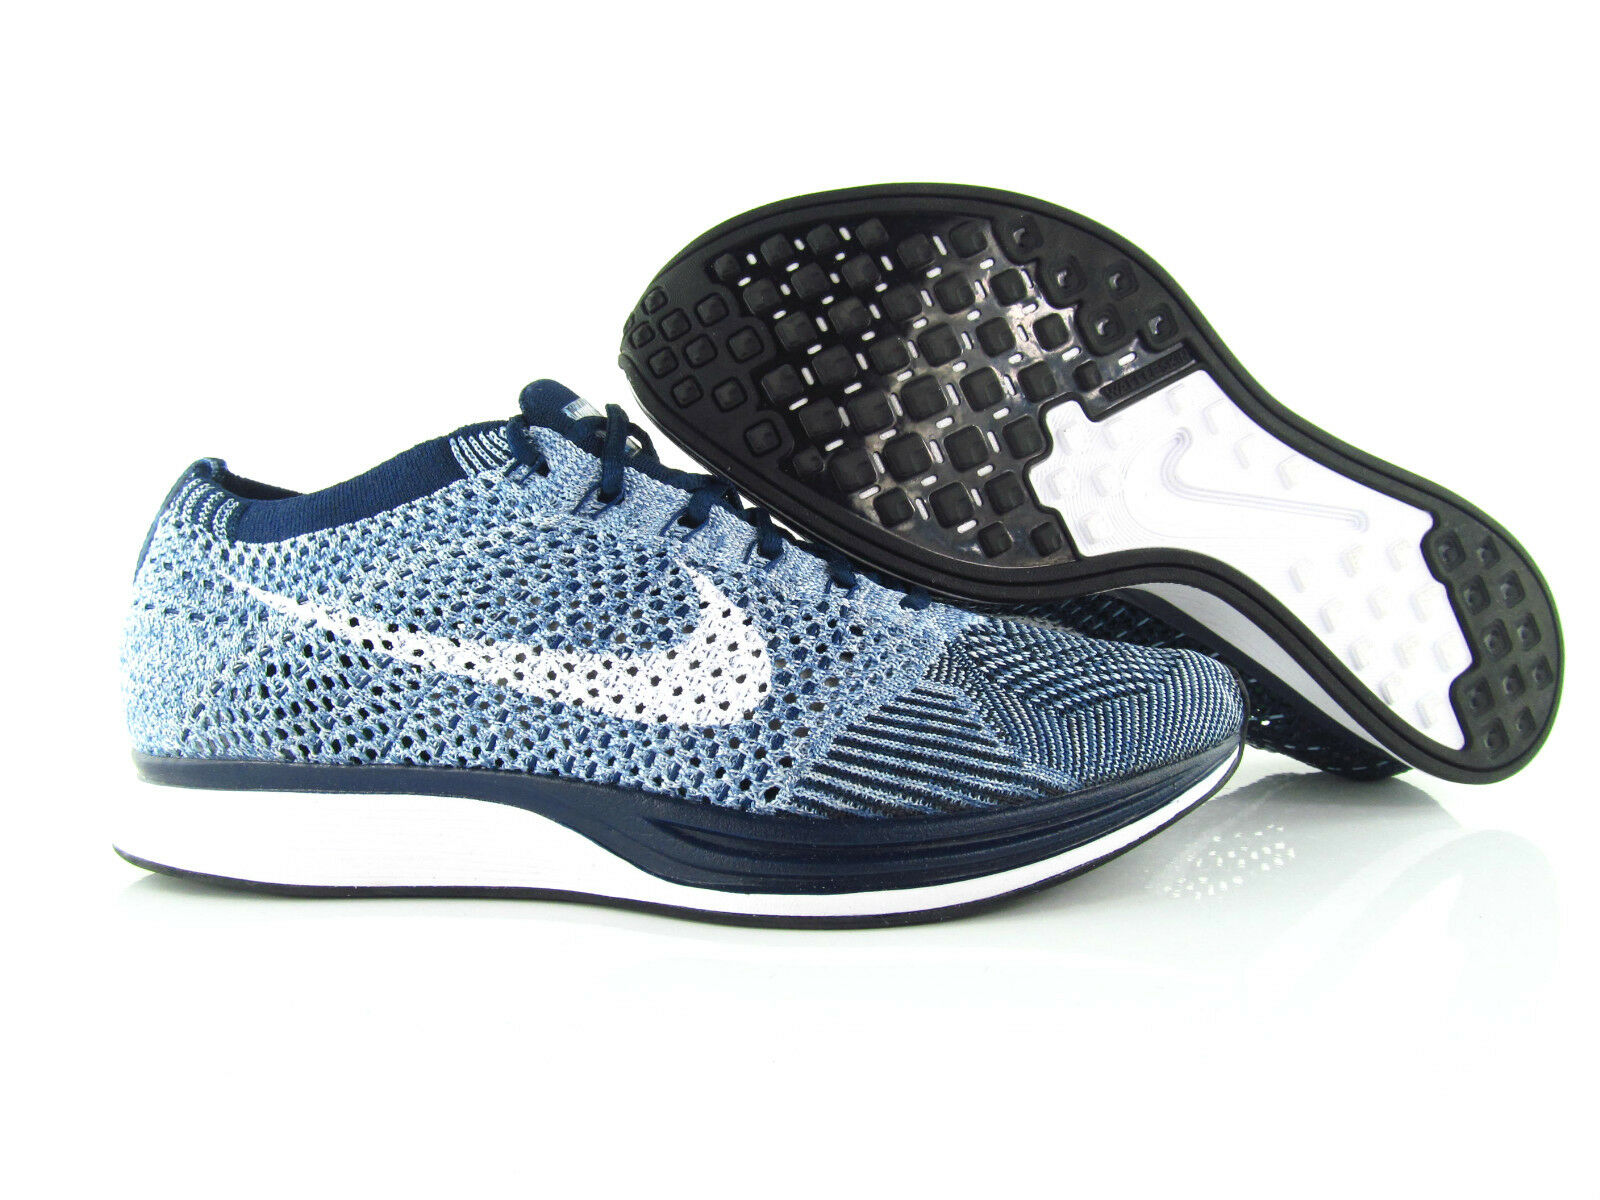 Nike Flyknit Racer Game Royal Navy Blue Trainers Running New Eur_36.5 - 38.5